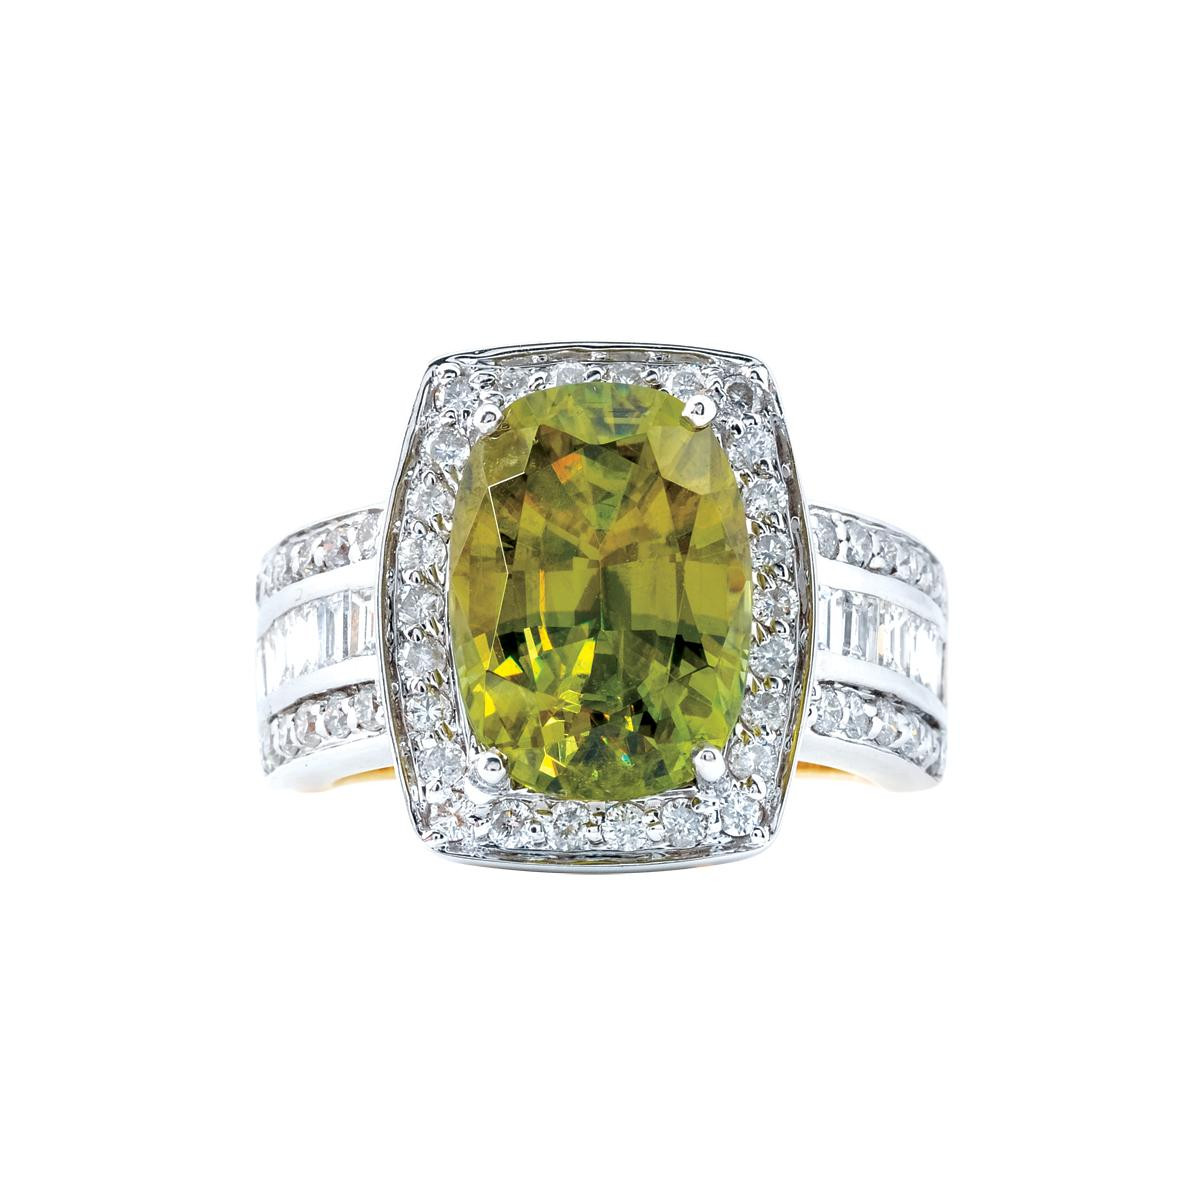 Vintage 7.75 CT Green Sphene Ring